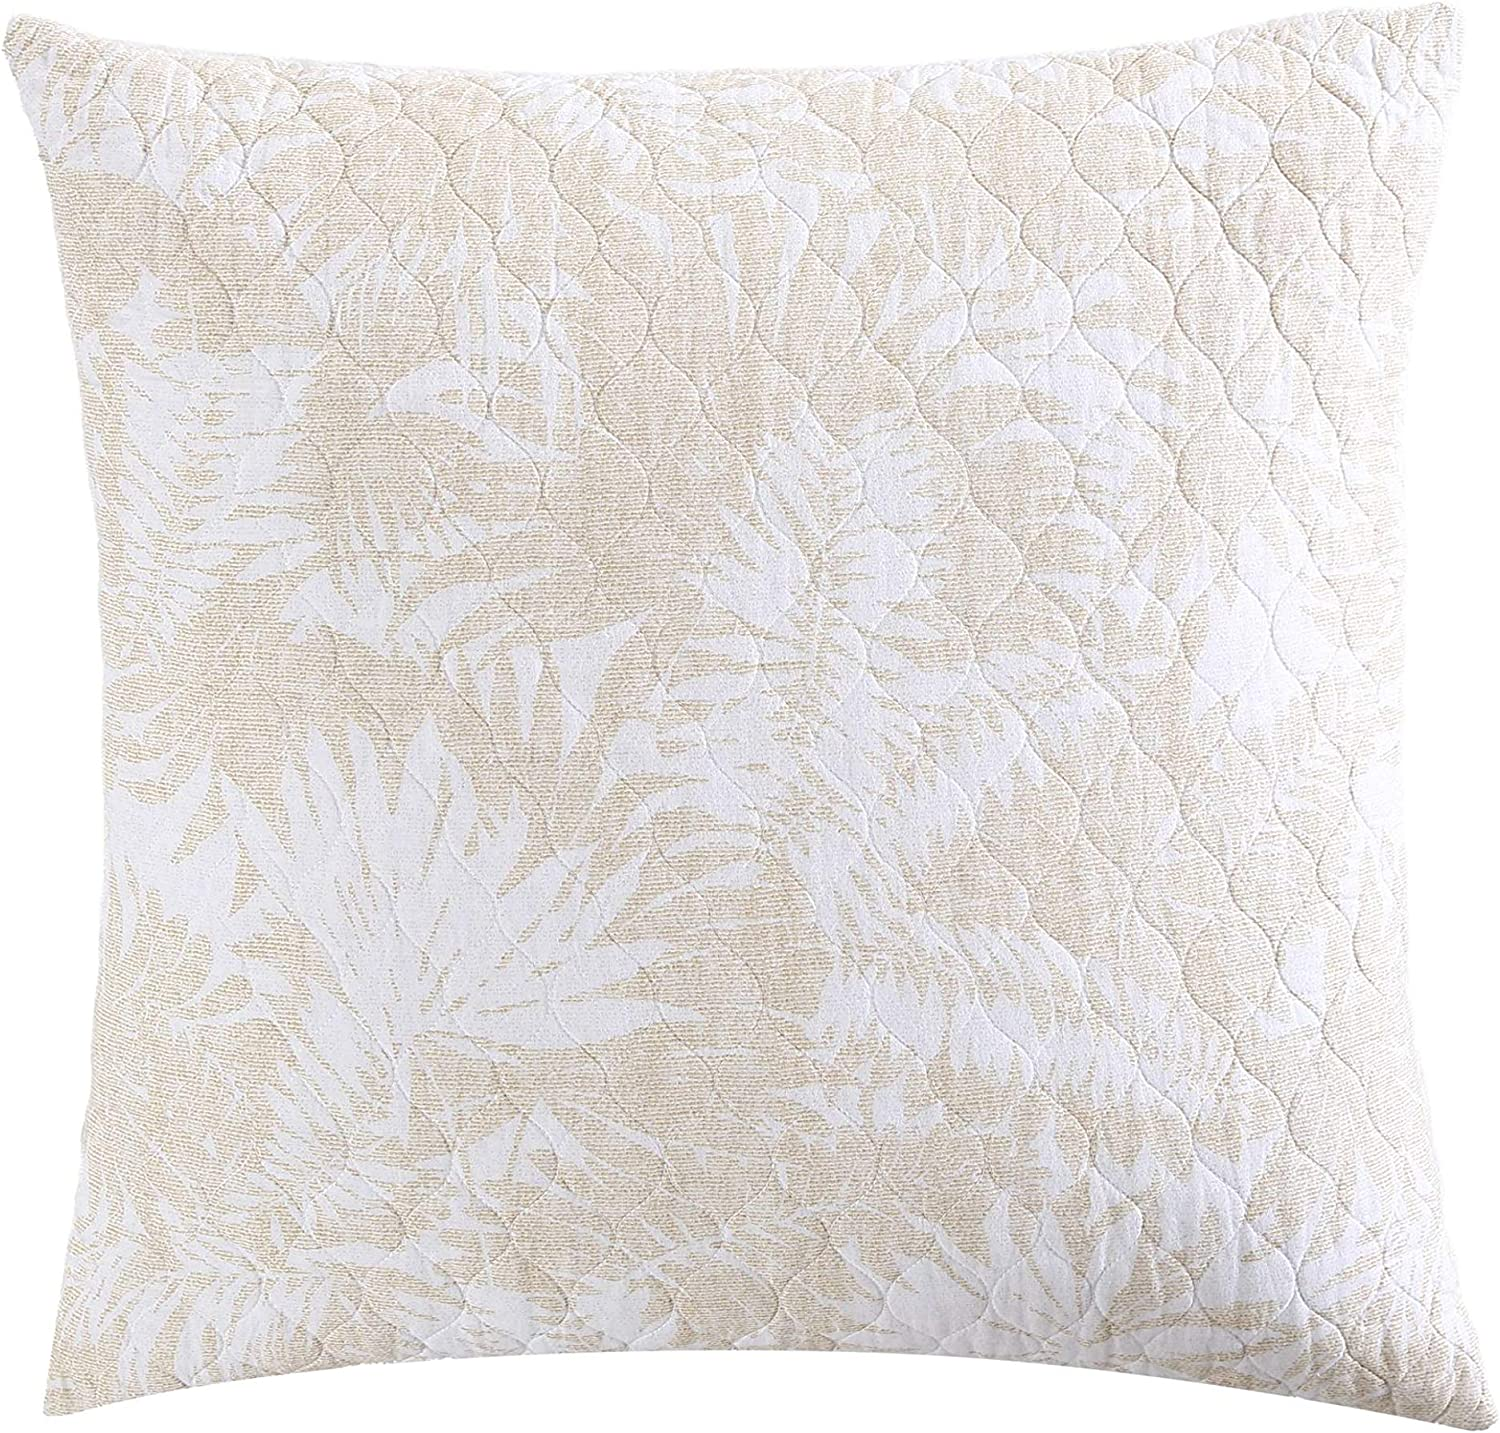 Tommy Bahama Home | Lago Leaves Collection| Two Euro Shams- Soft and Cozy Casual Style Decorative Throw Pillow with Zipper Closure, Includes Removable Insert, 26 x 26, Yellow